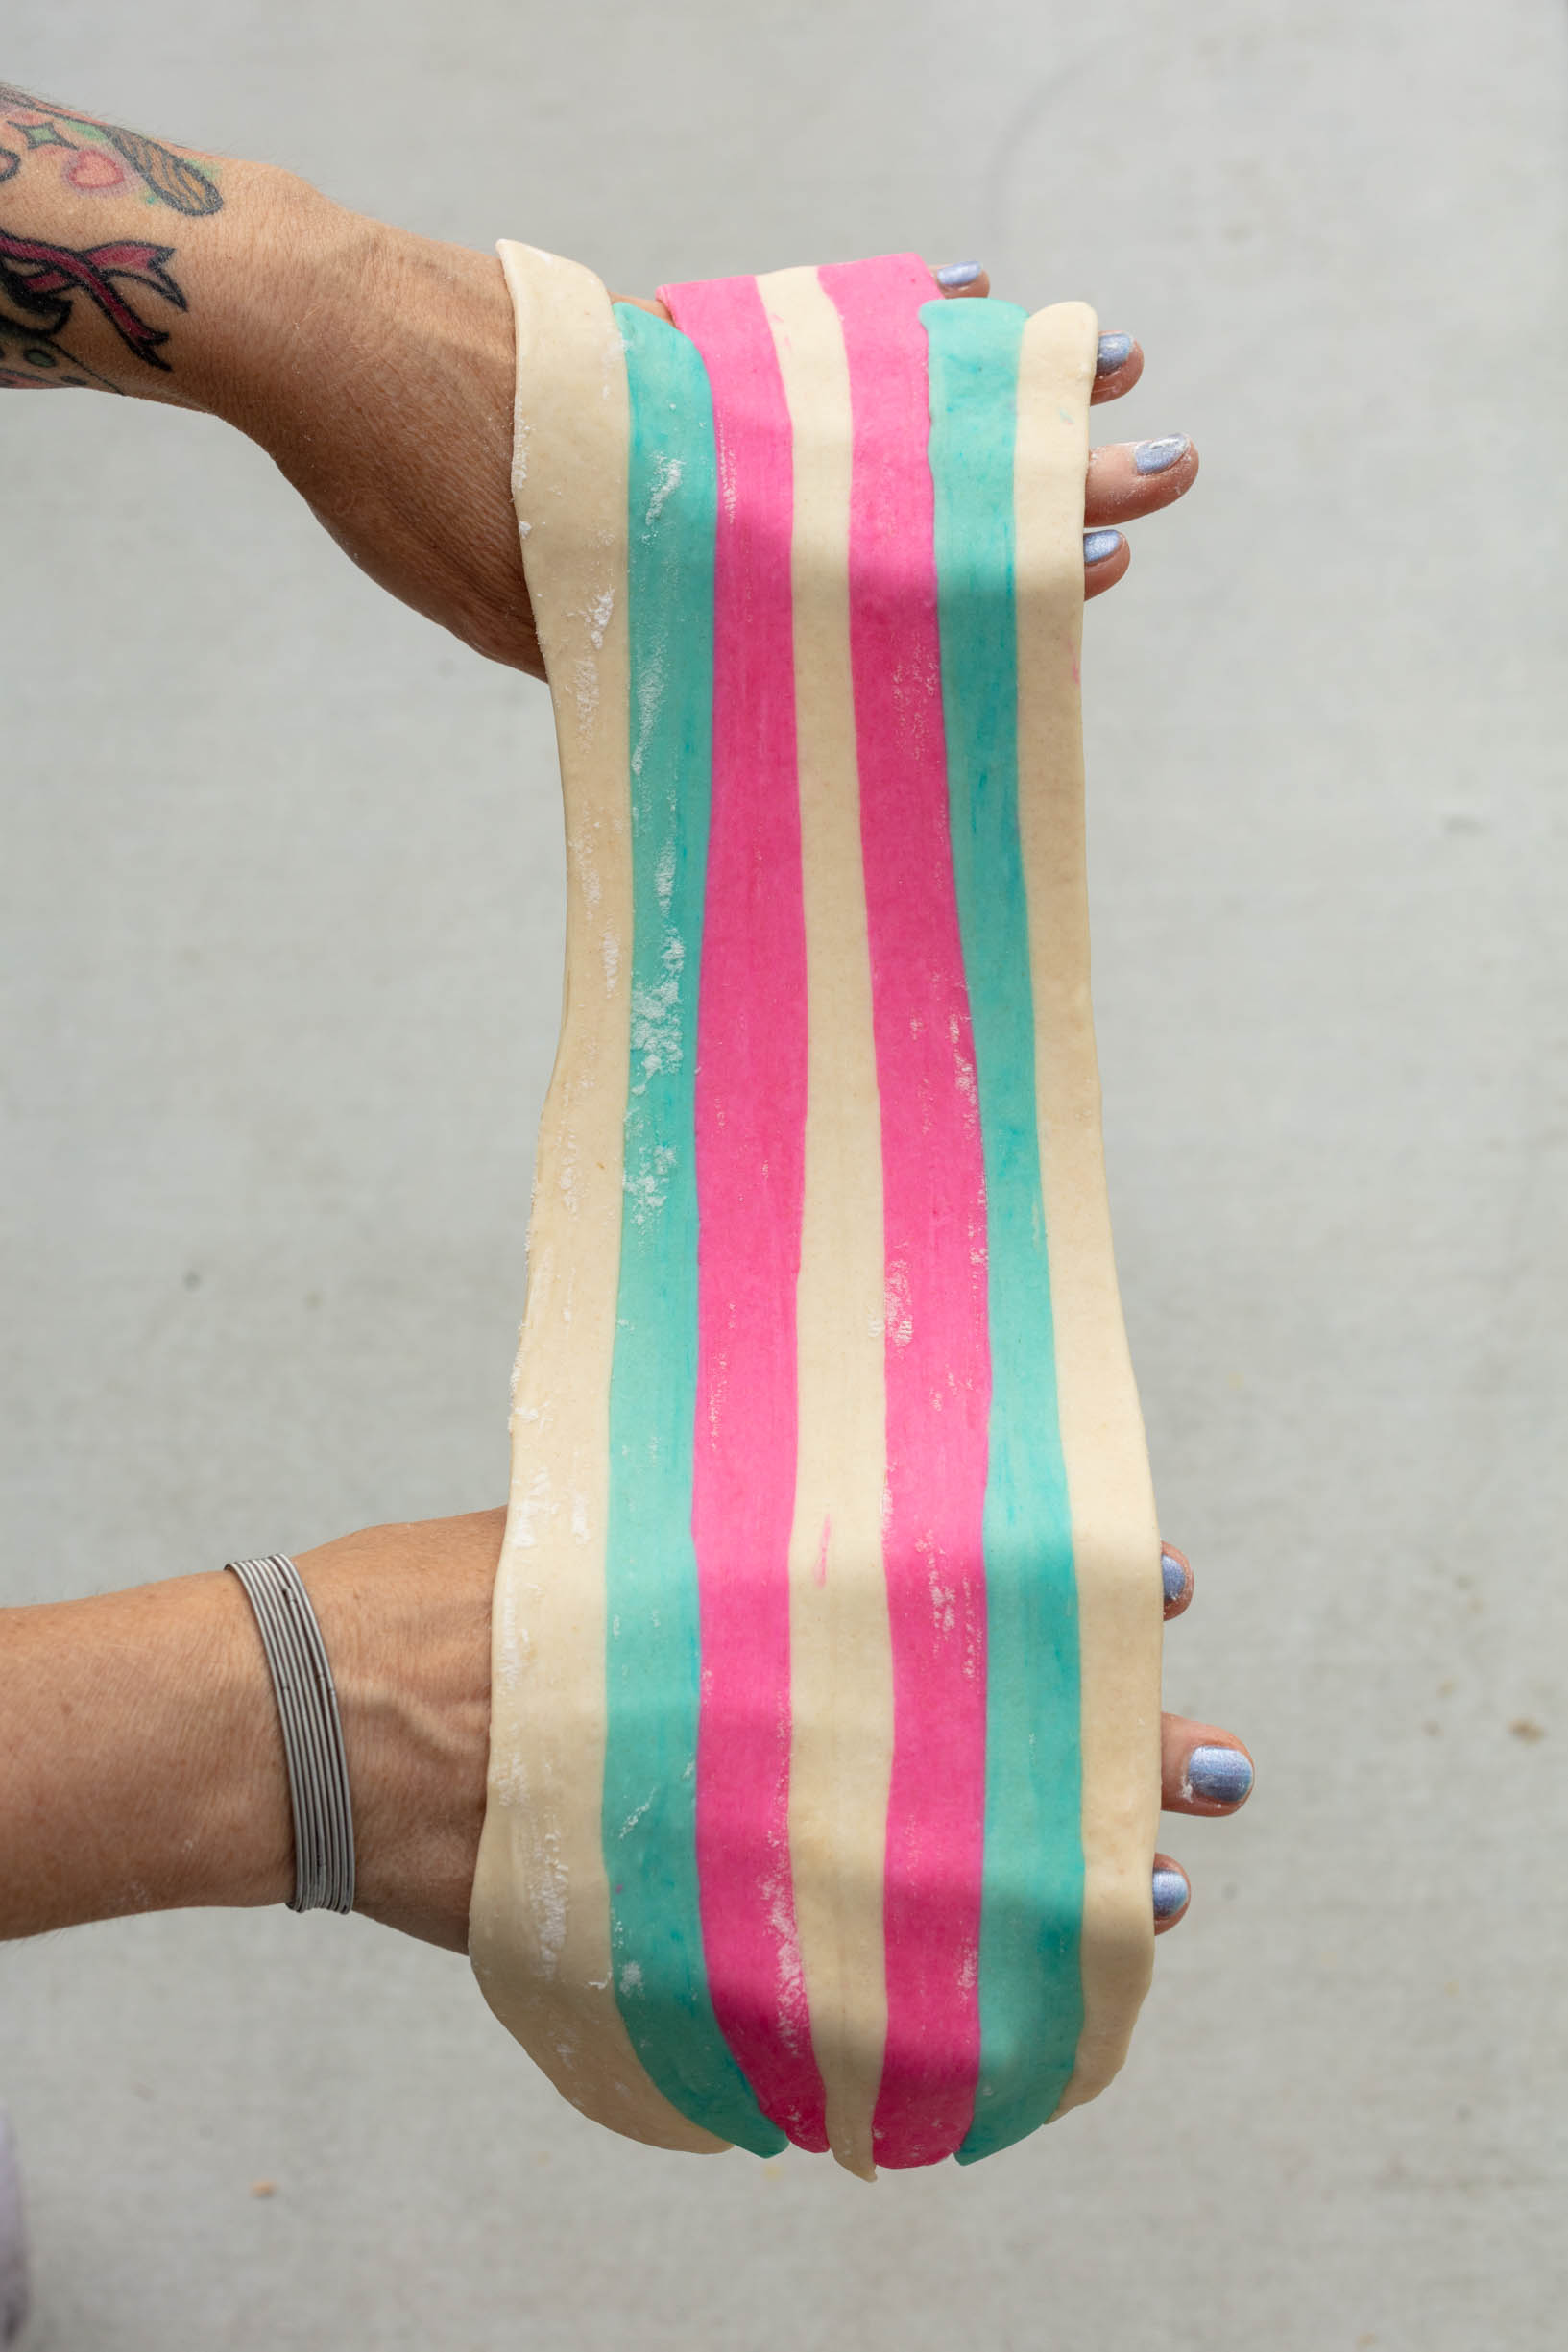 trans flag pasta dough